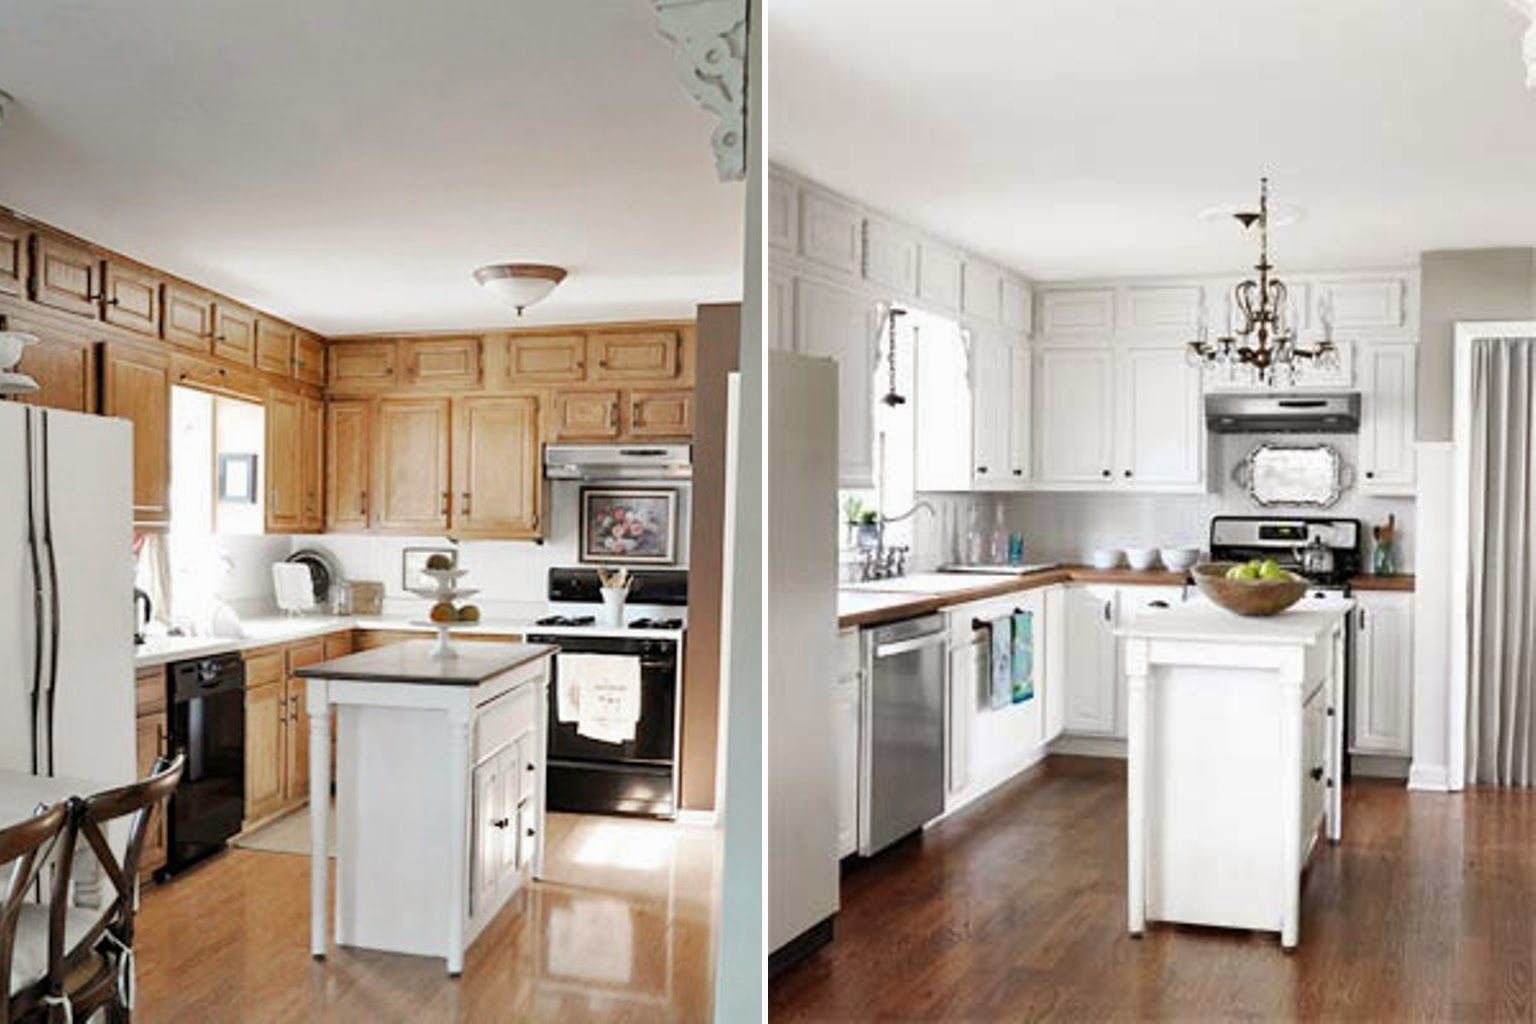 Paint Kitchen Cabinets White Before And After Painting Kitchen Cabinets White Kitchen Remodel Small Old Kitchen Cabinets